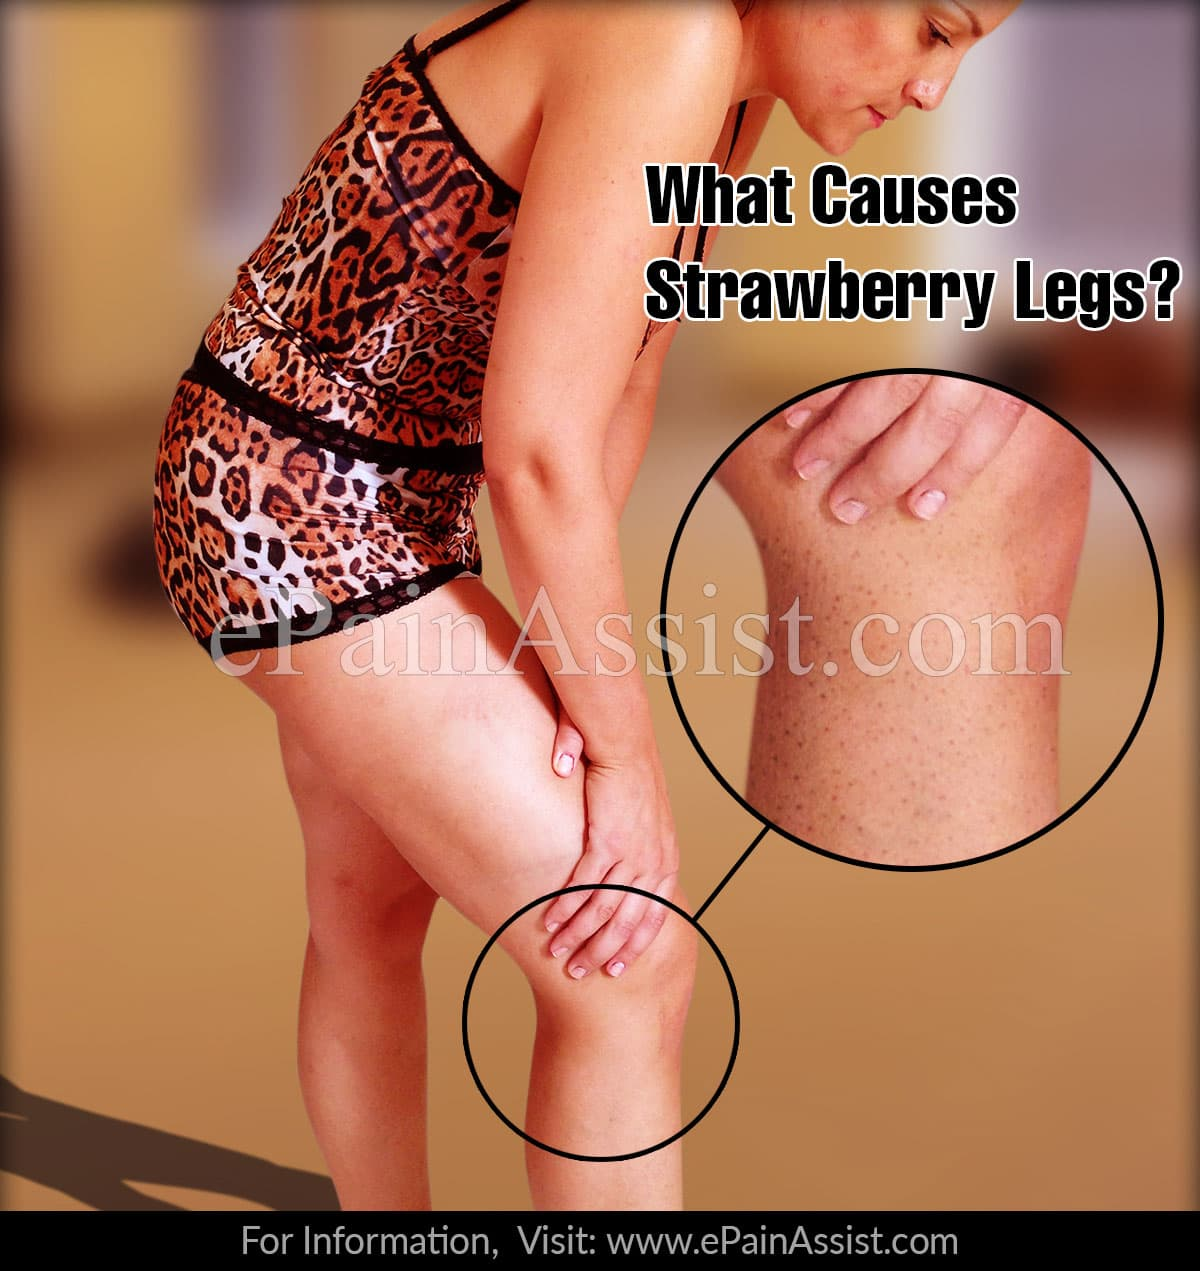 What Causes Strawberry Legs?